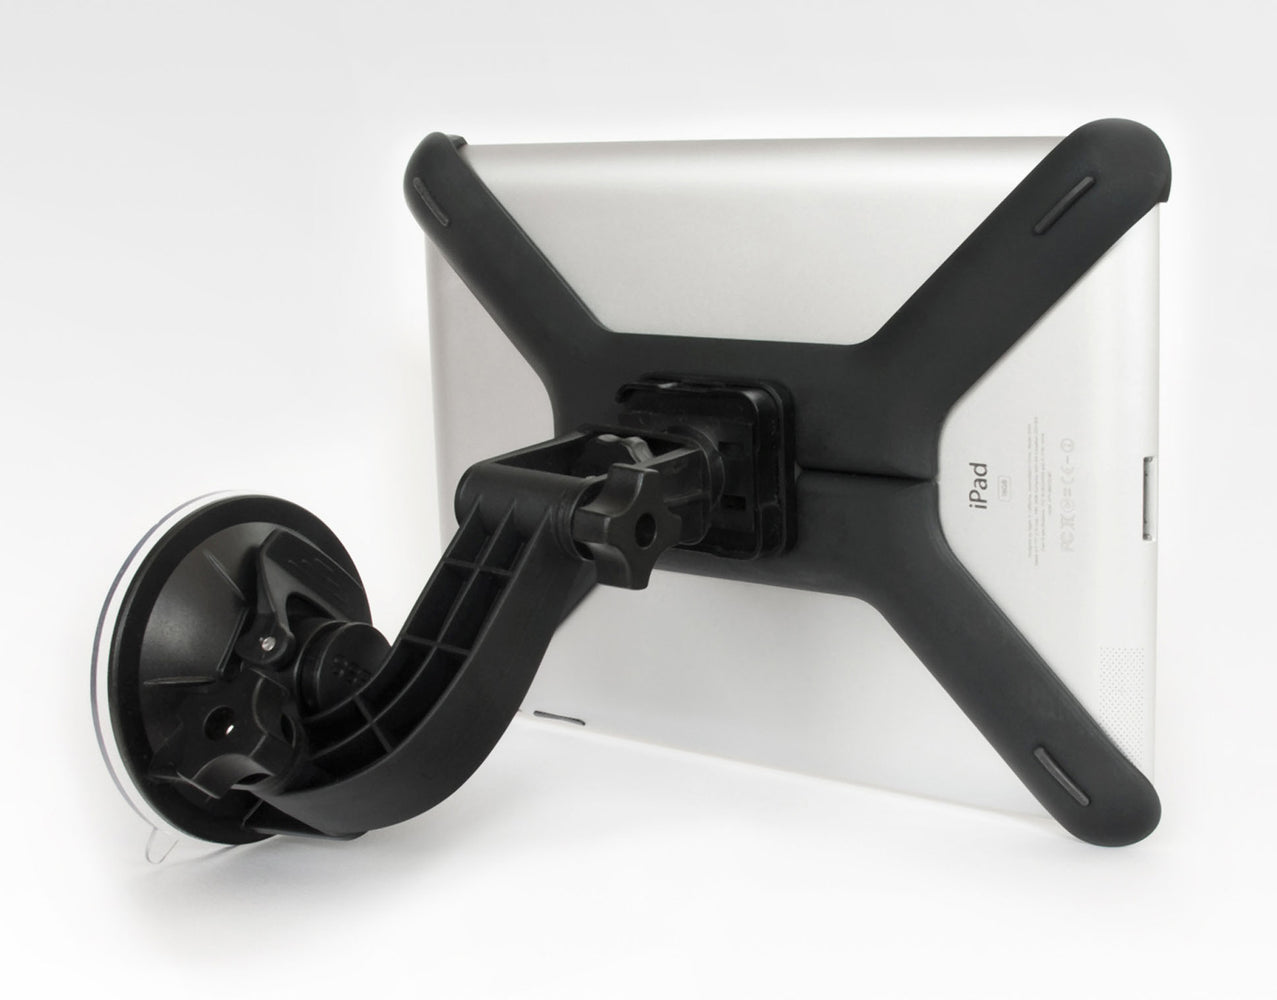 XVIDA Suction Mount